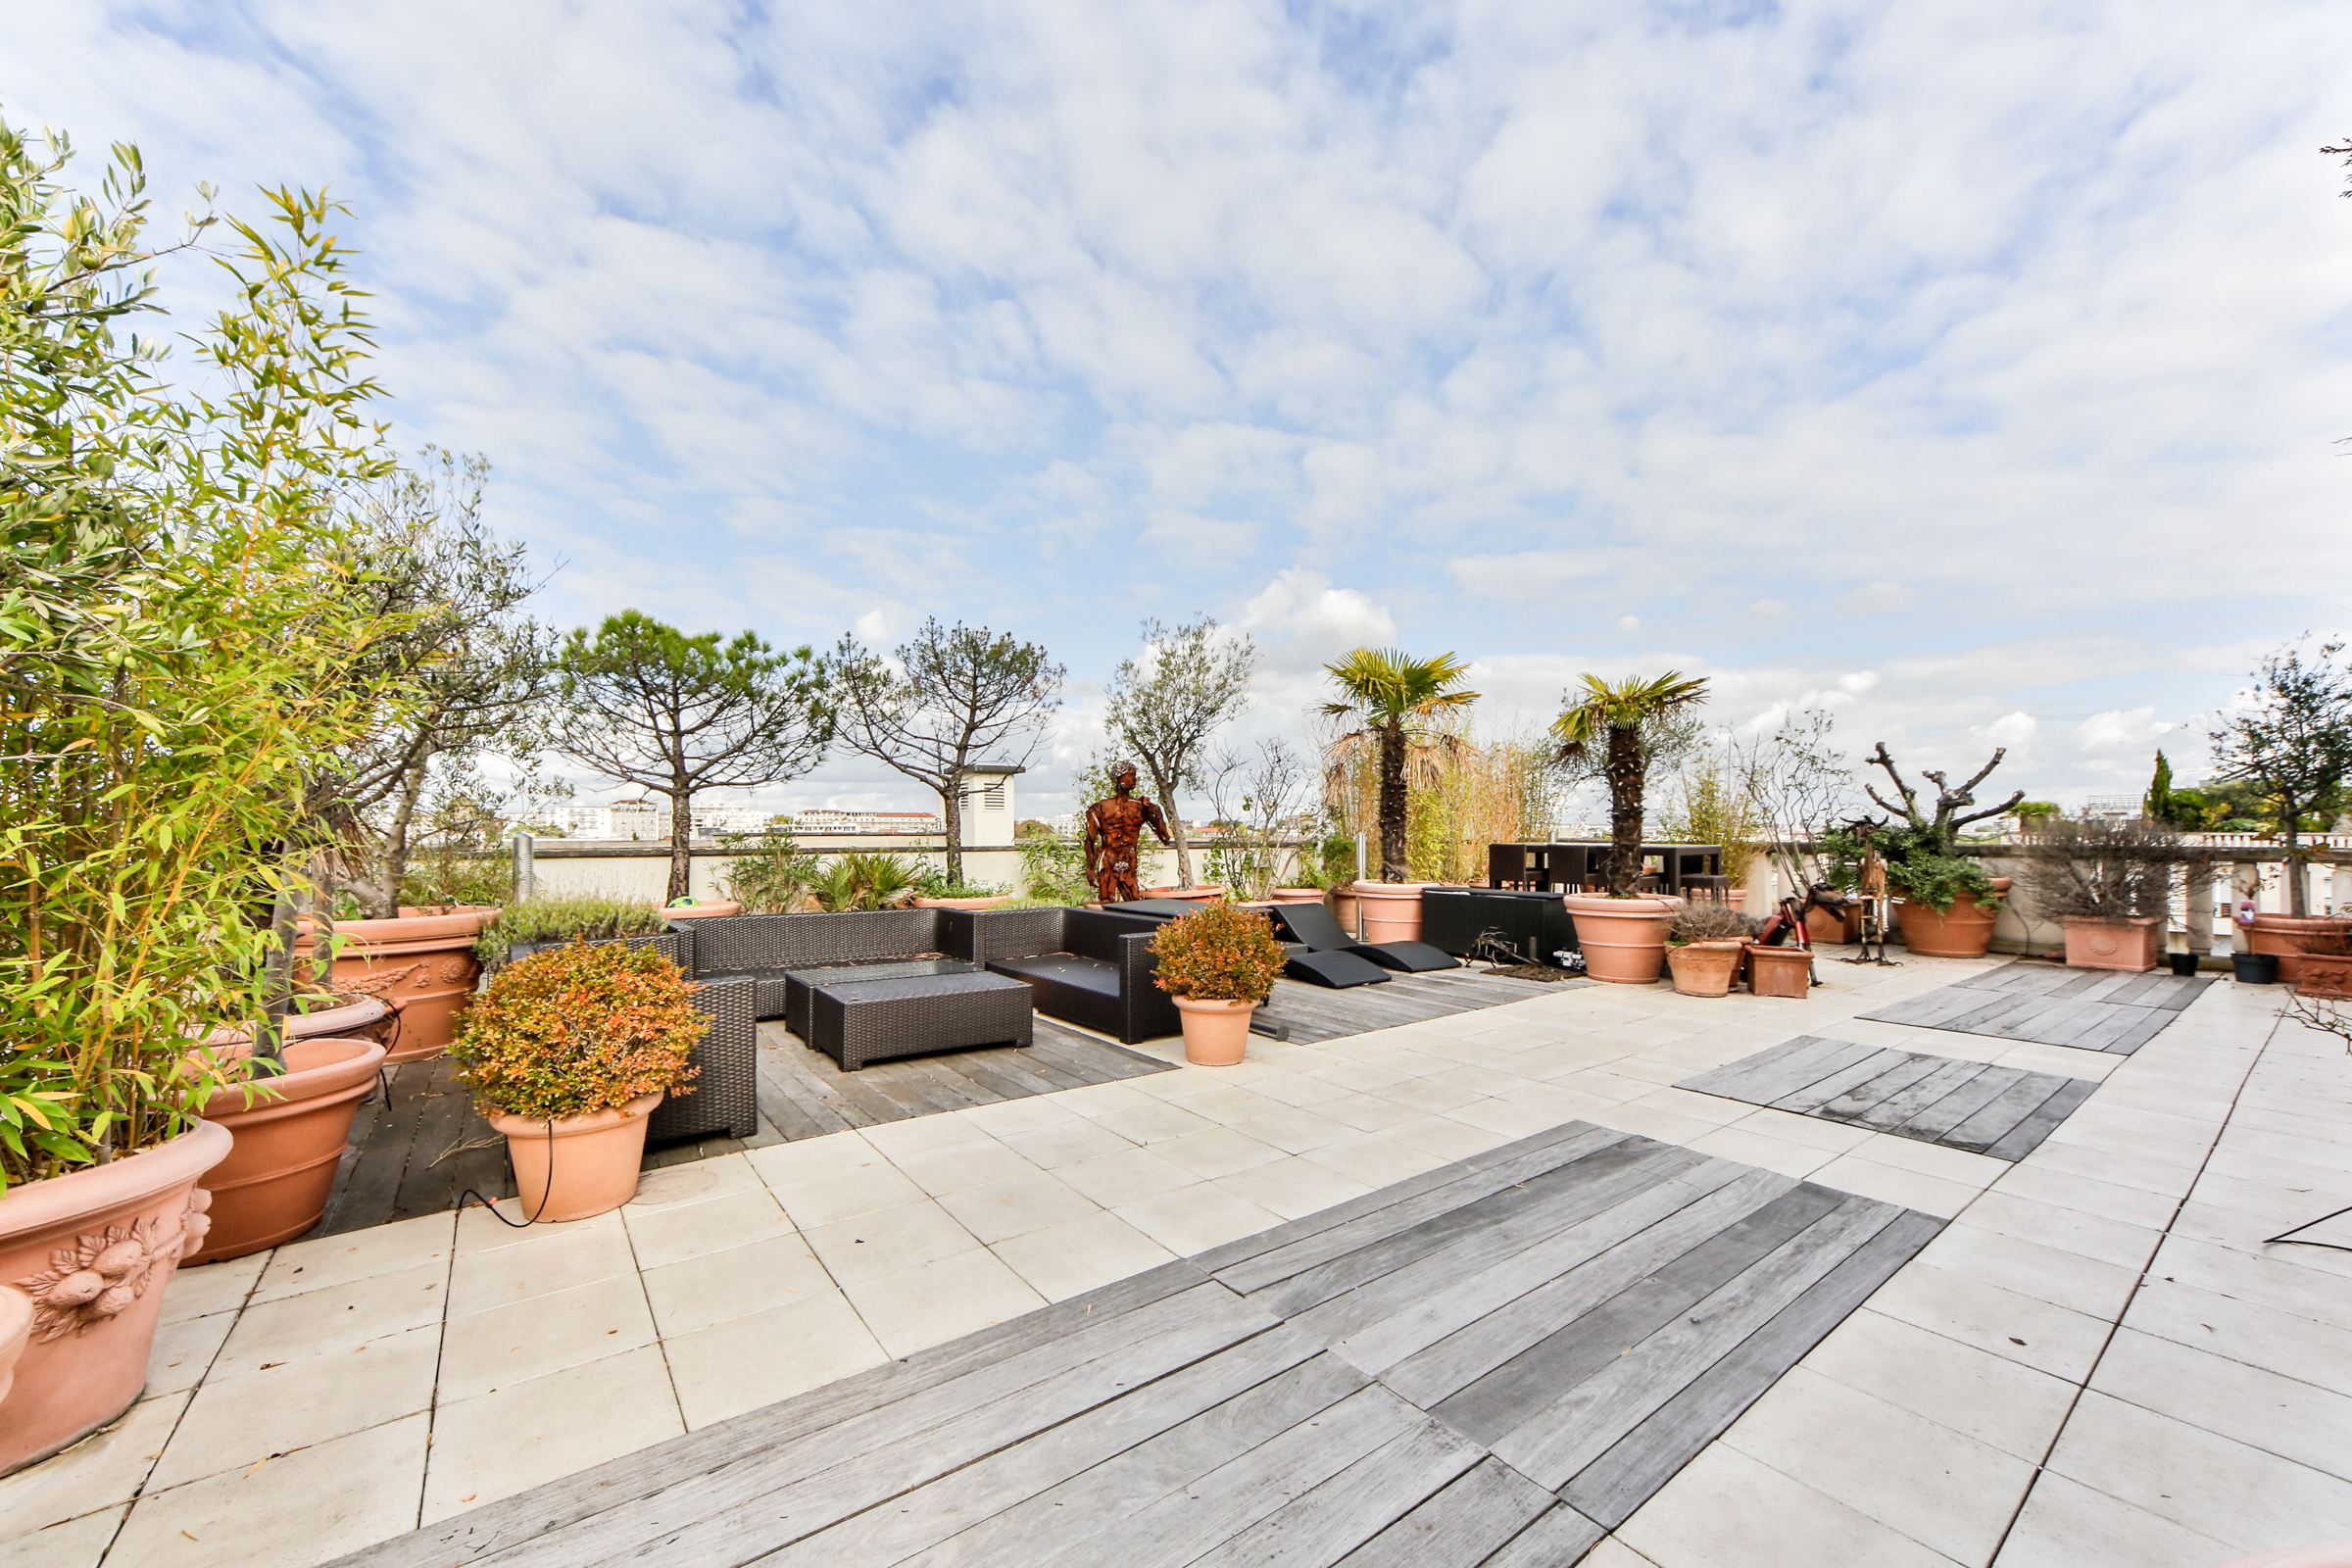 sales property at A 160 sq.m Penthouse, 350 sq.m terraces for sale, Levallois Perret - Greffulhe